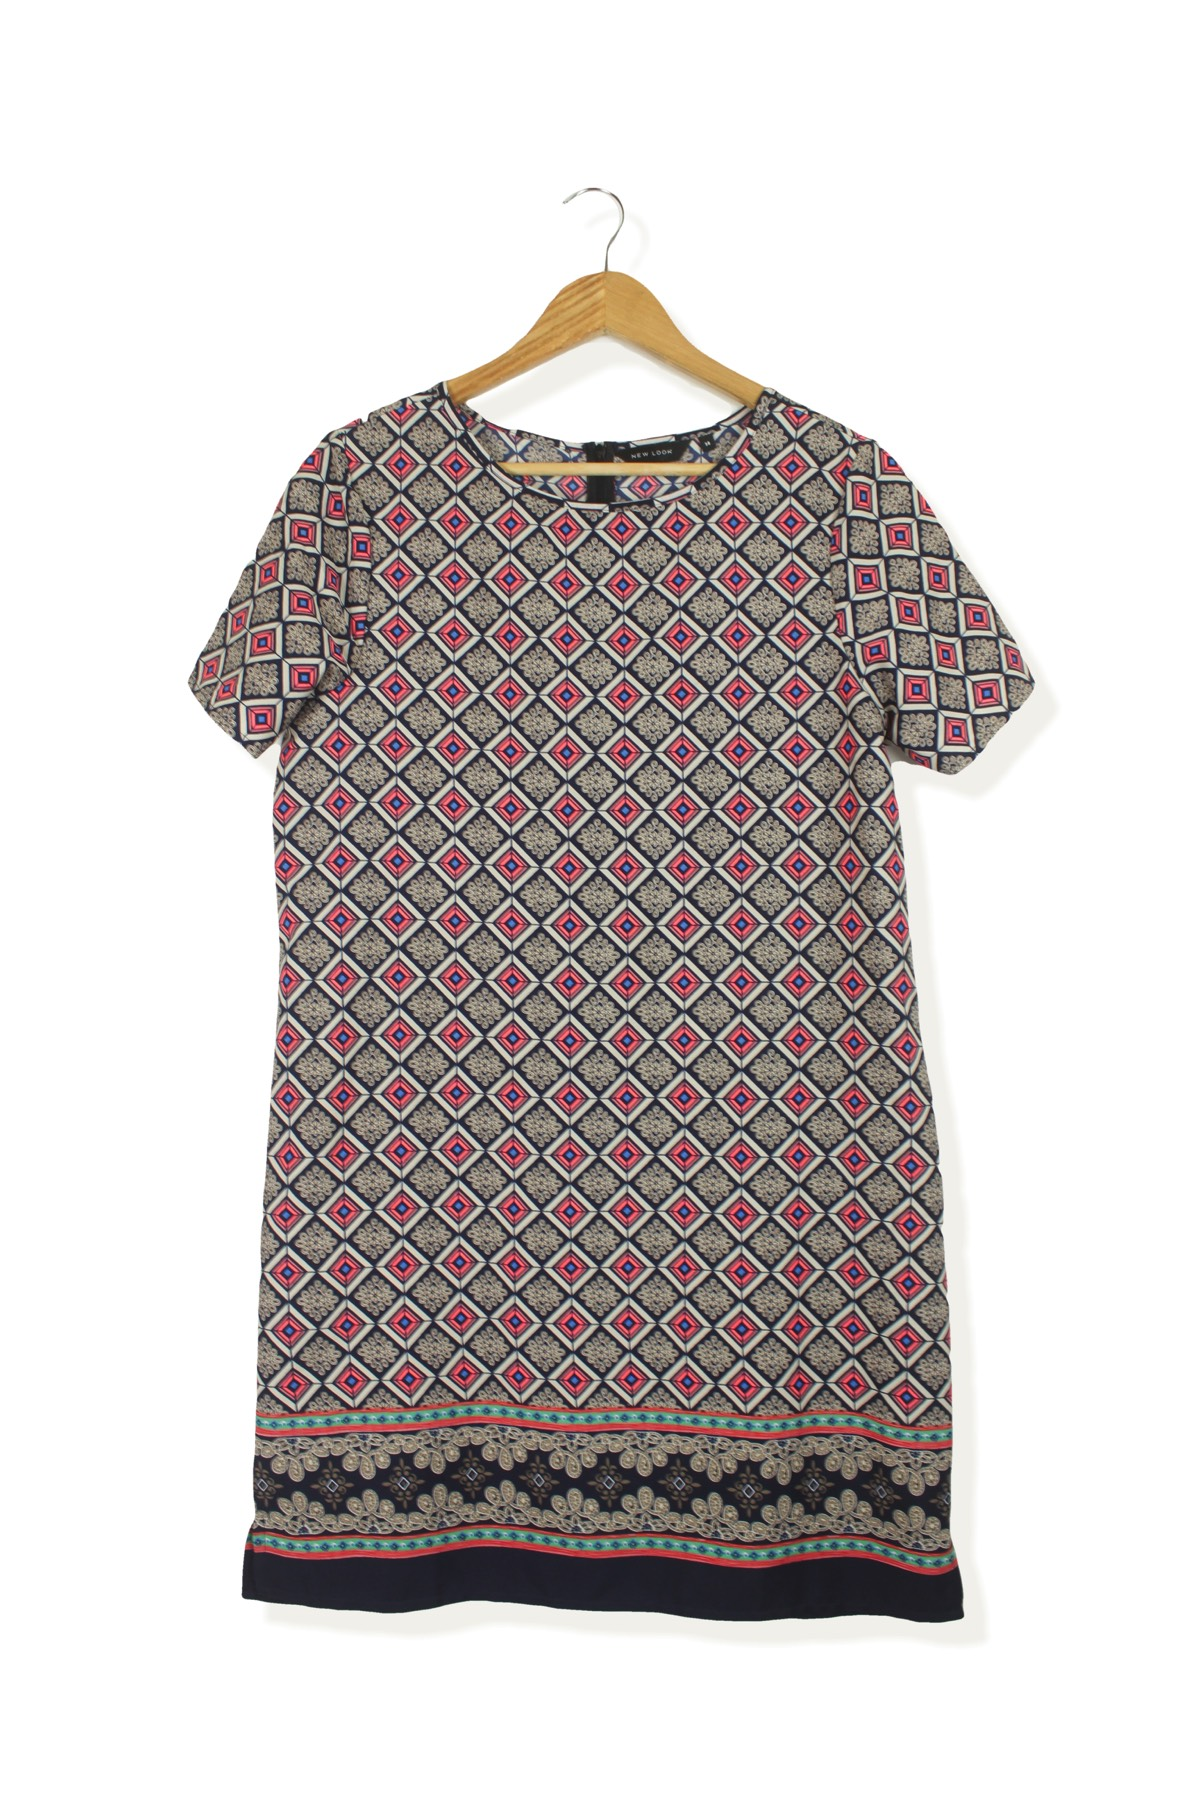 d46e1692097a78 New Look • Size 14 • Women, Dresses, Second-Hand Clothing • O a f o ...